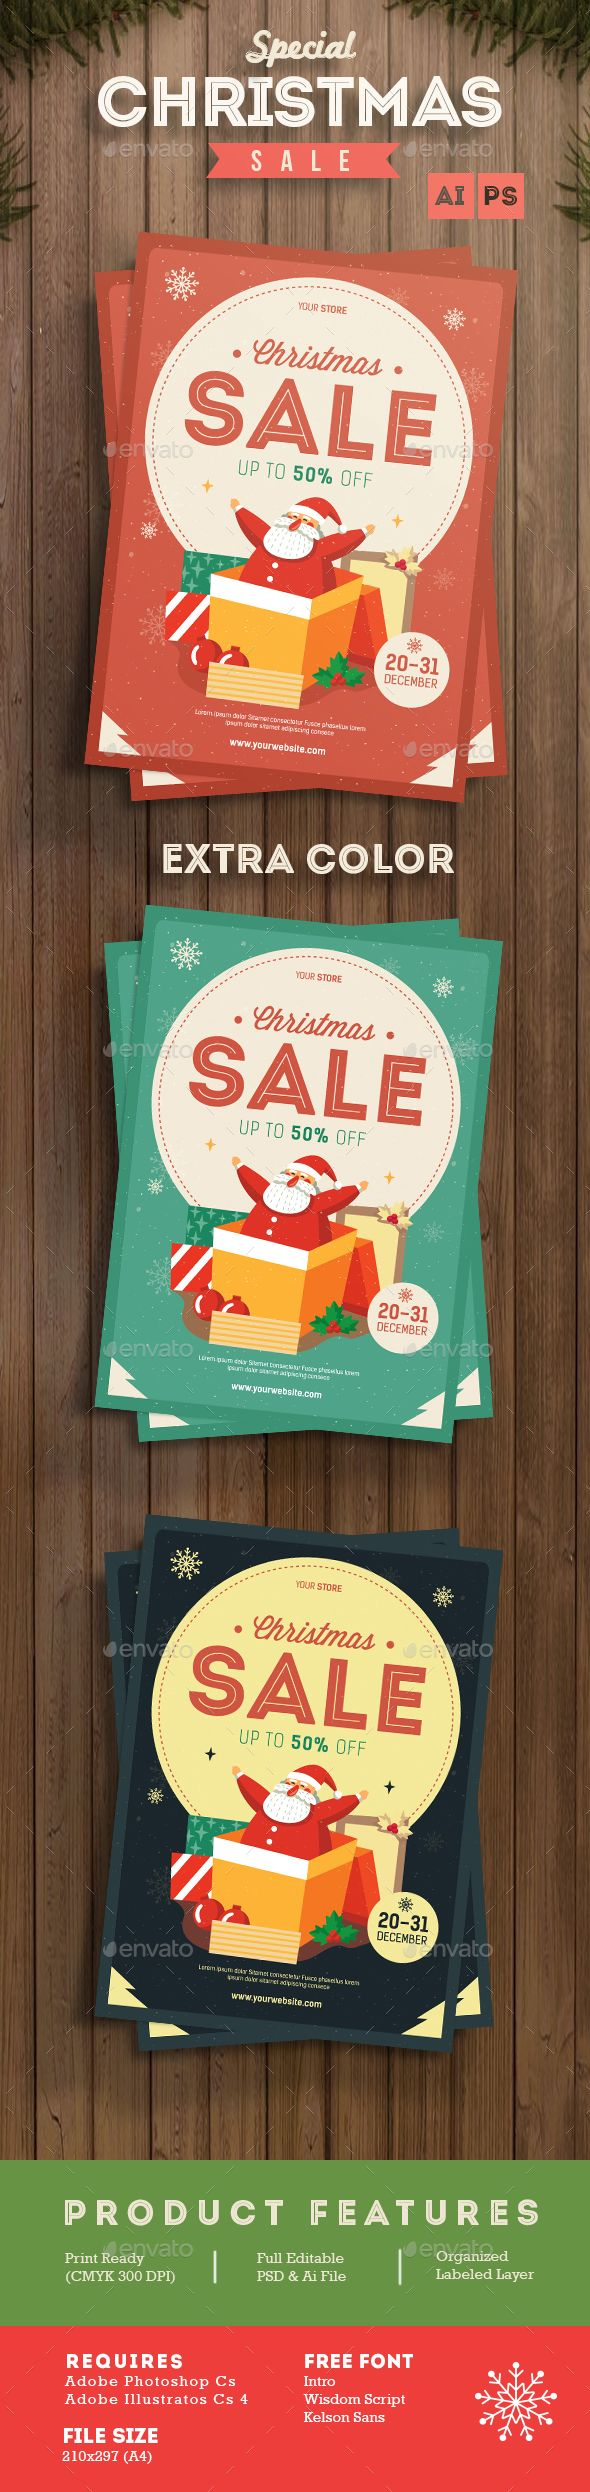 Christmas Sale Flyer Template PSD #design #xmas Download: http://graphicriver.net/item/christmas-sale-flyer/13456947?ref=ksioks